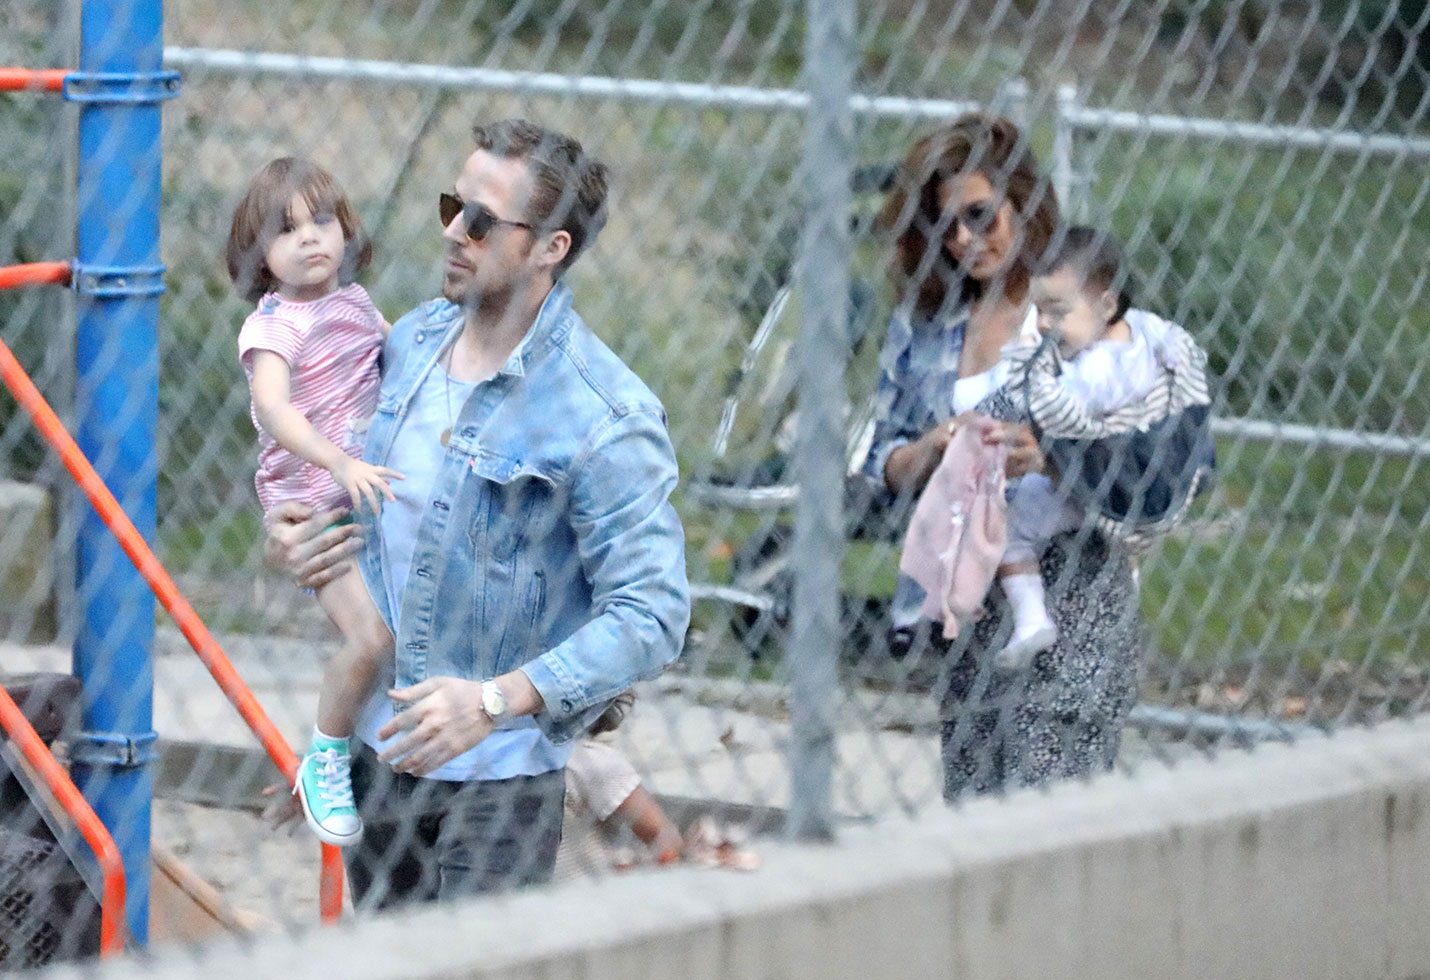 [PHOTOS] Ryan Gosling Eva Mendes Playground With Daughters